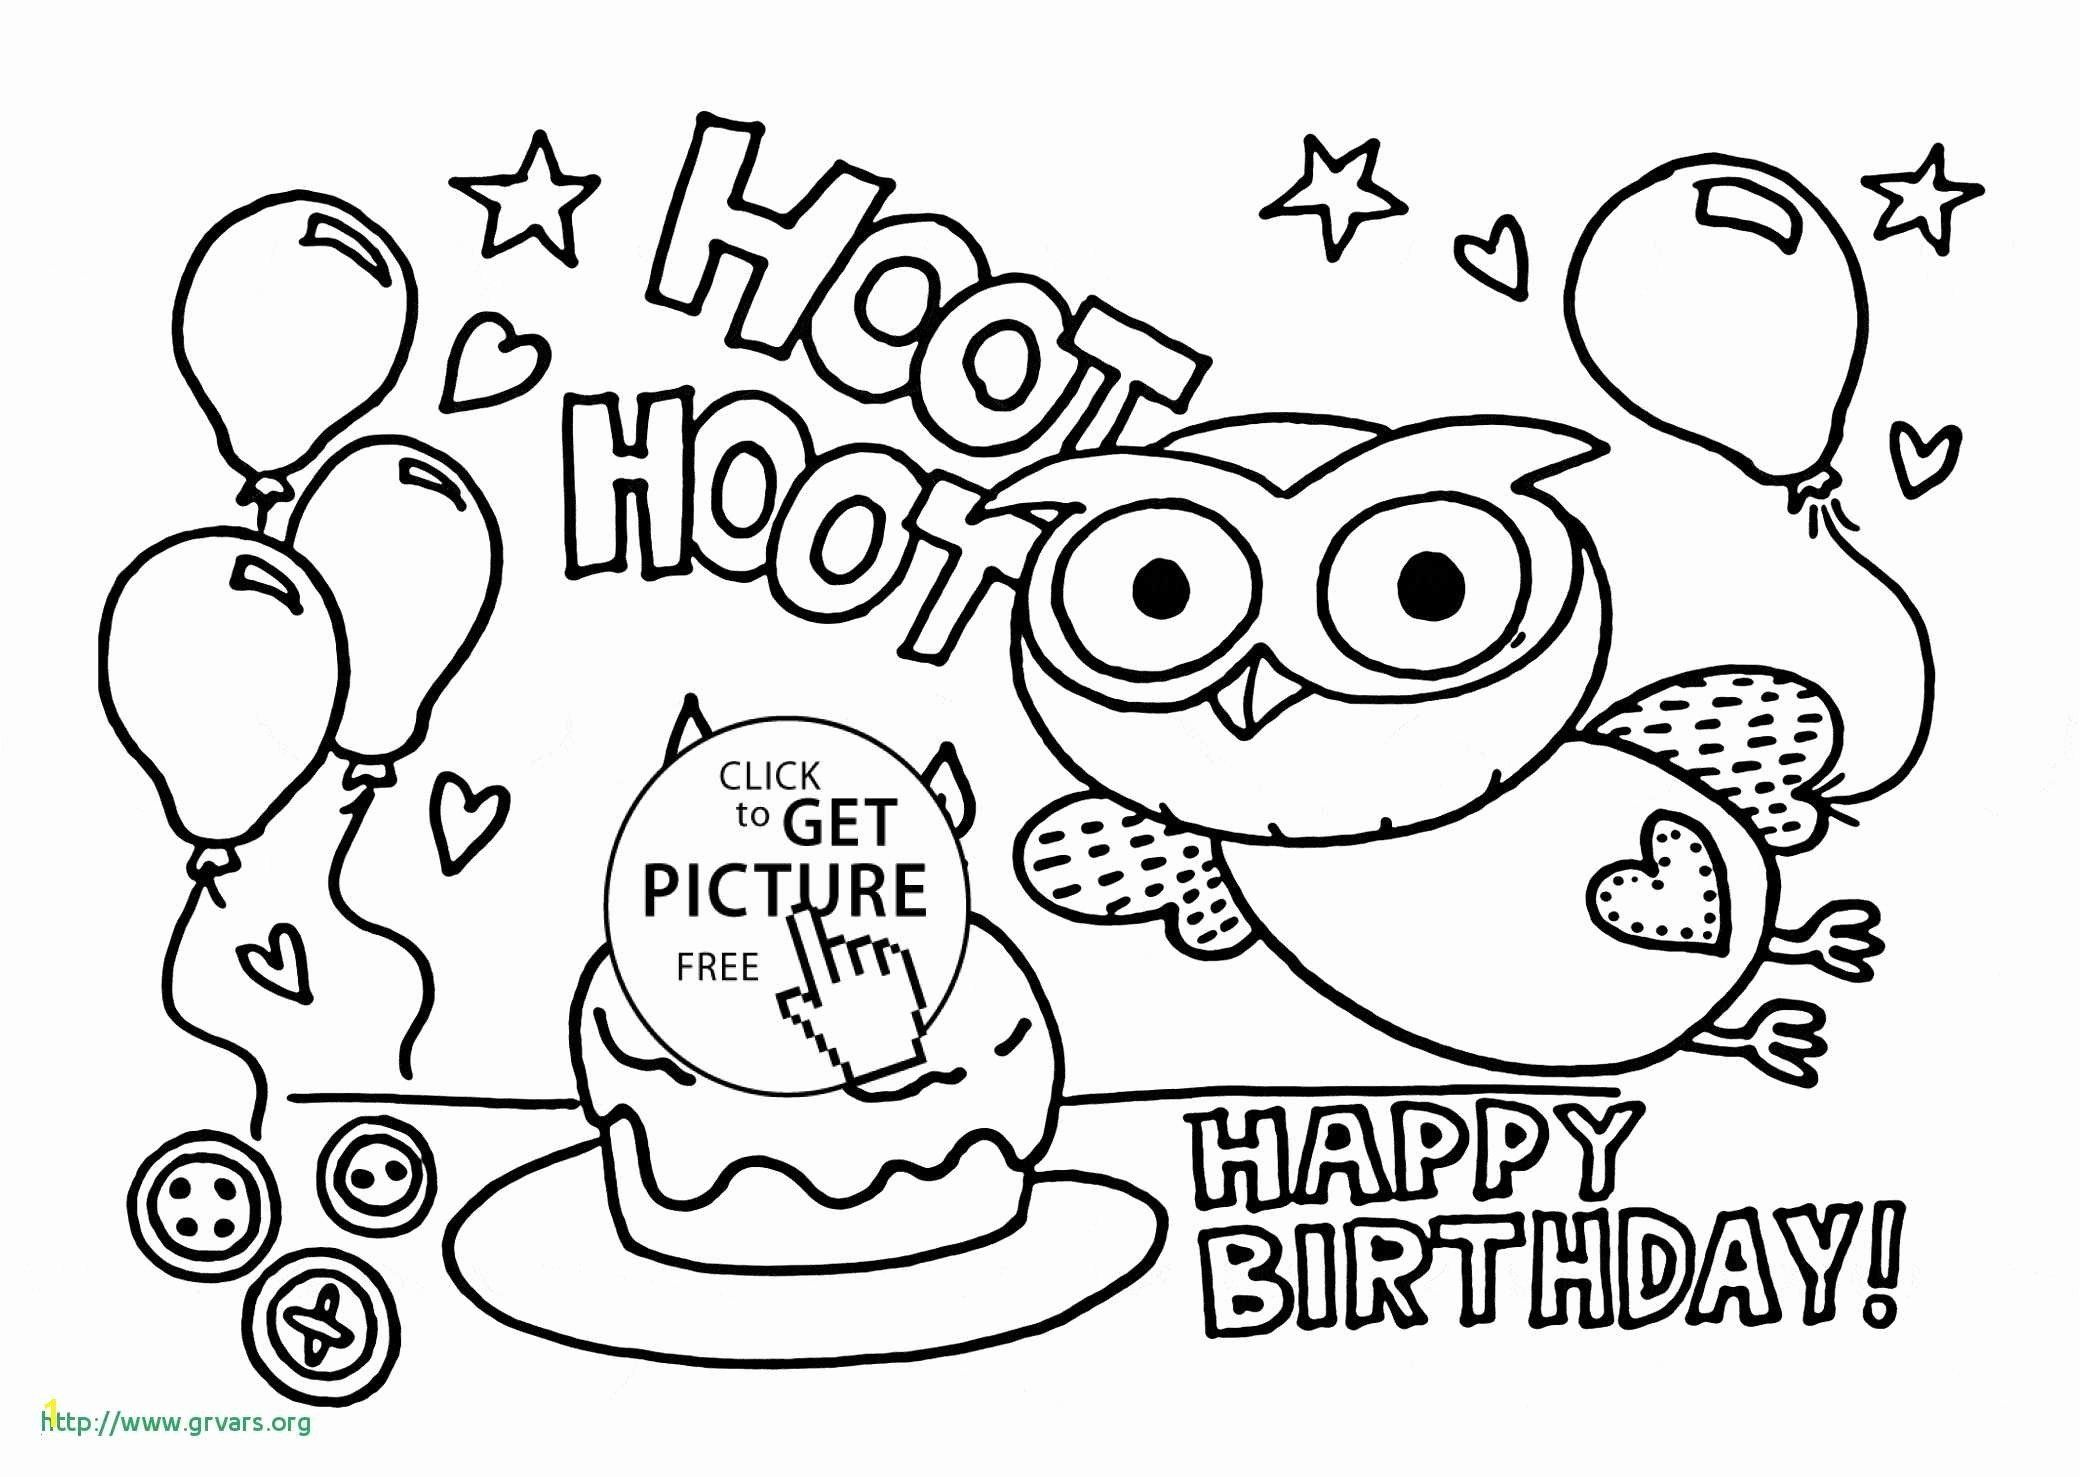 40th birthday coloring pages 30 best birthday images on pinterest 40 birthday 40th coloring pages 40th birthday